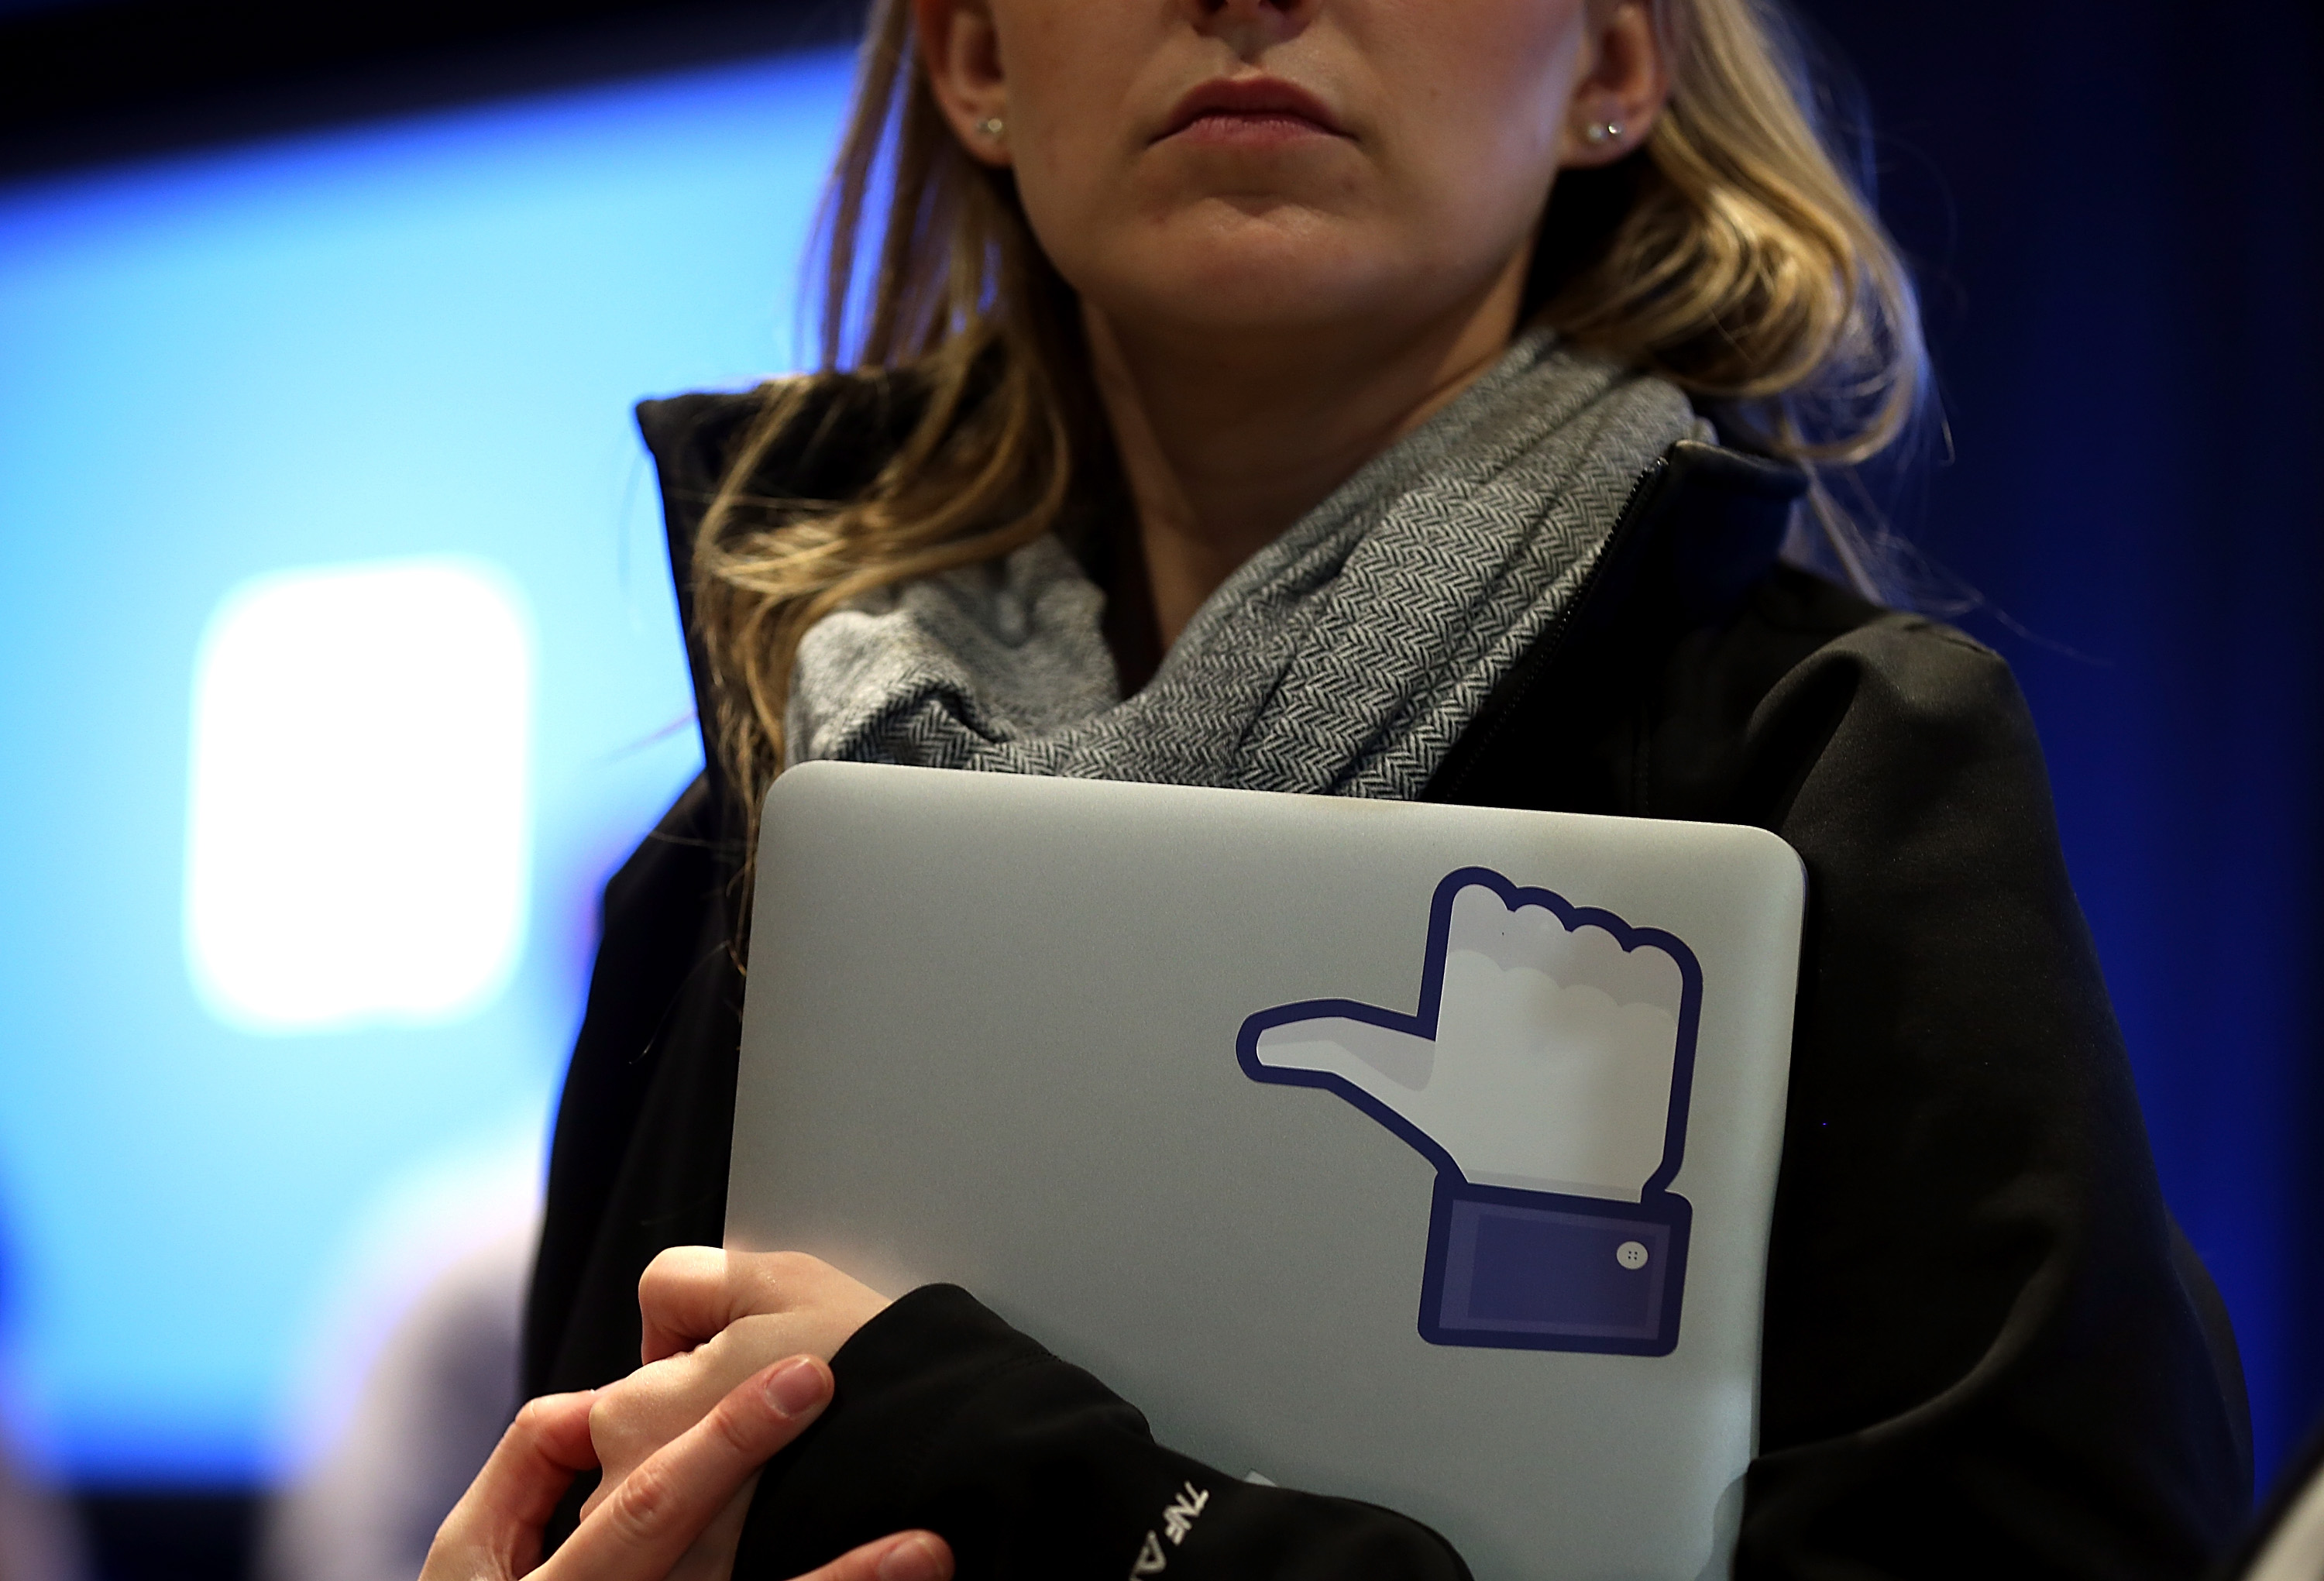 A Facebook employee holds a laptop with a  like  sticker on it during an event at Facebook headquarters during an event at Facebook headquarters on April 4, 2013 in Menlo Park, California.